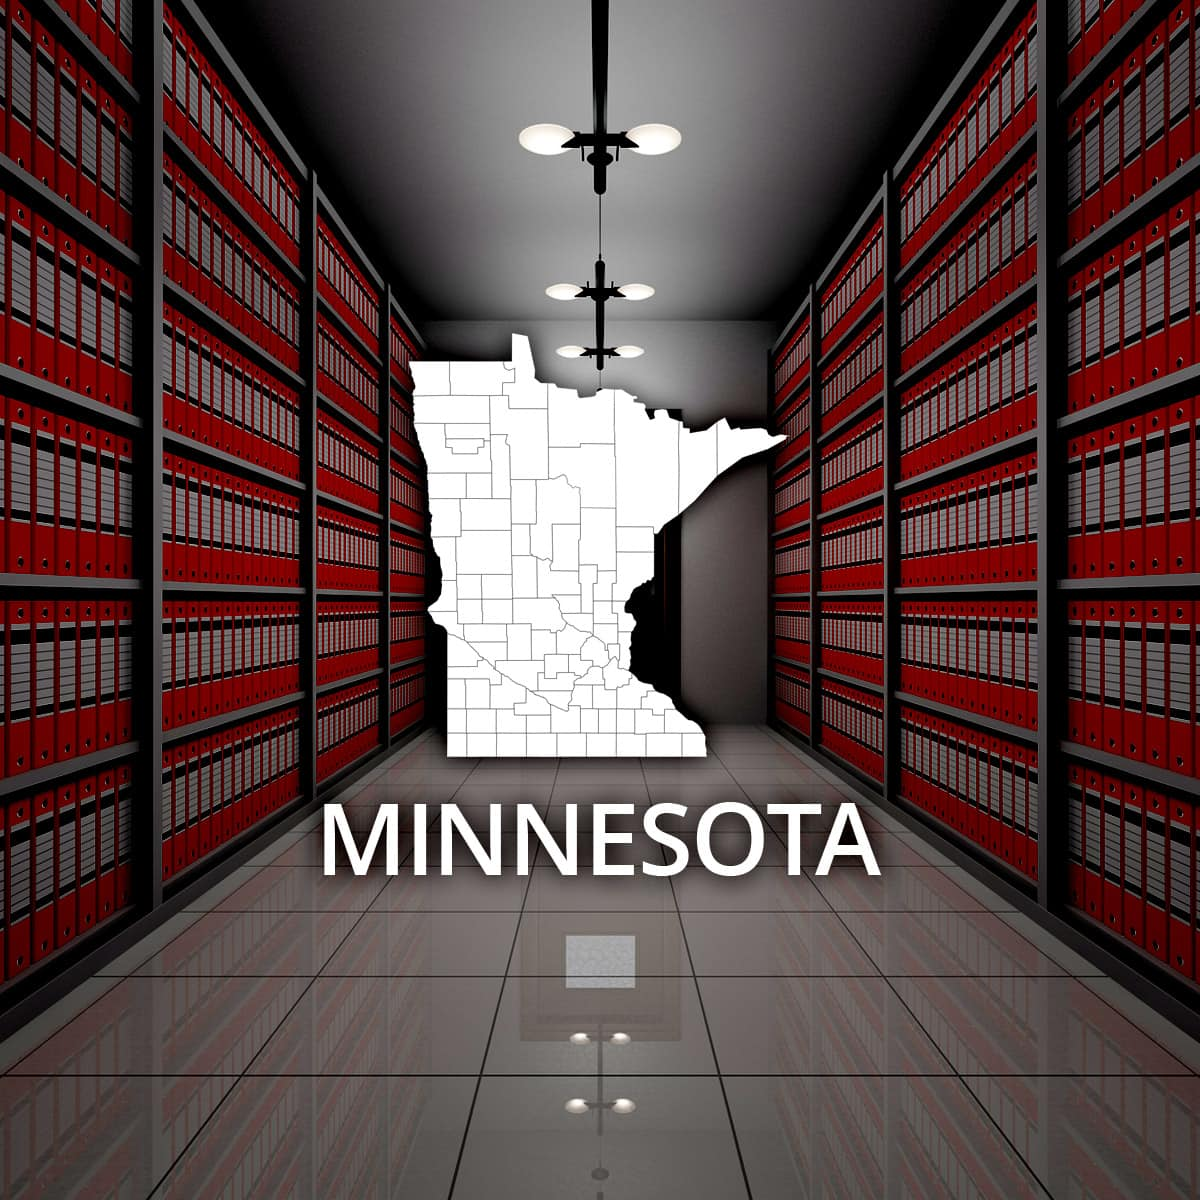 Minnesota Public Records